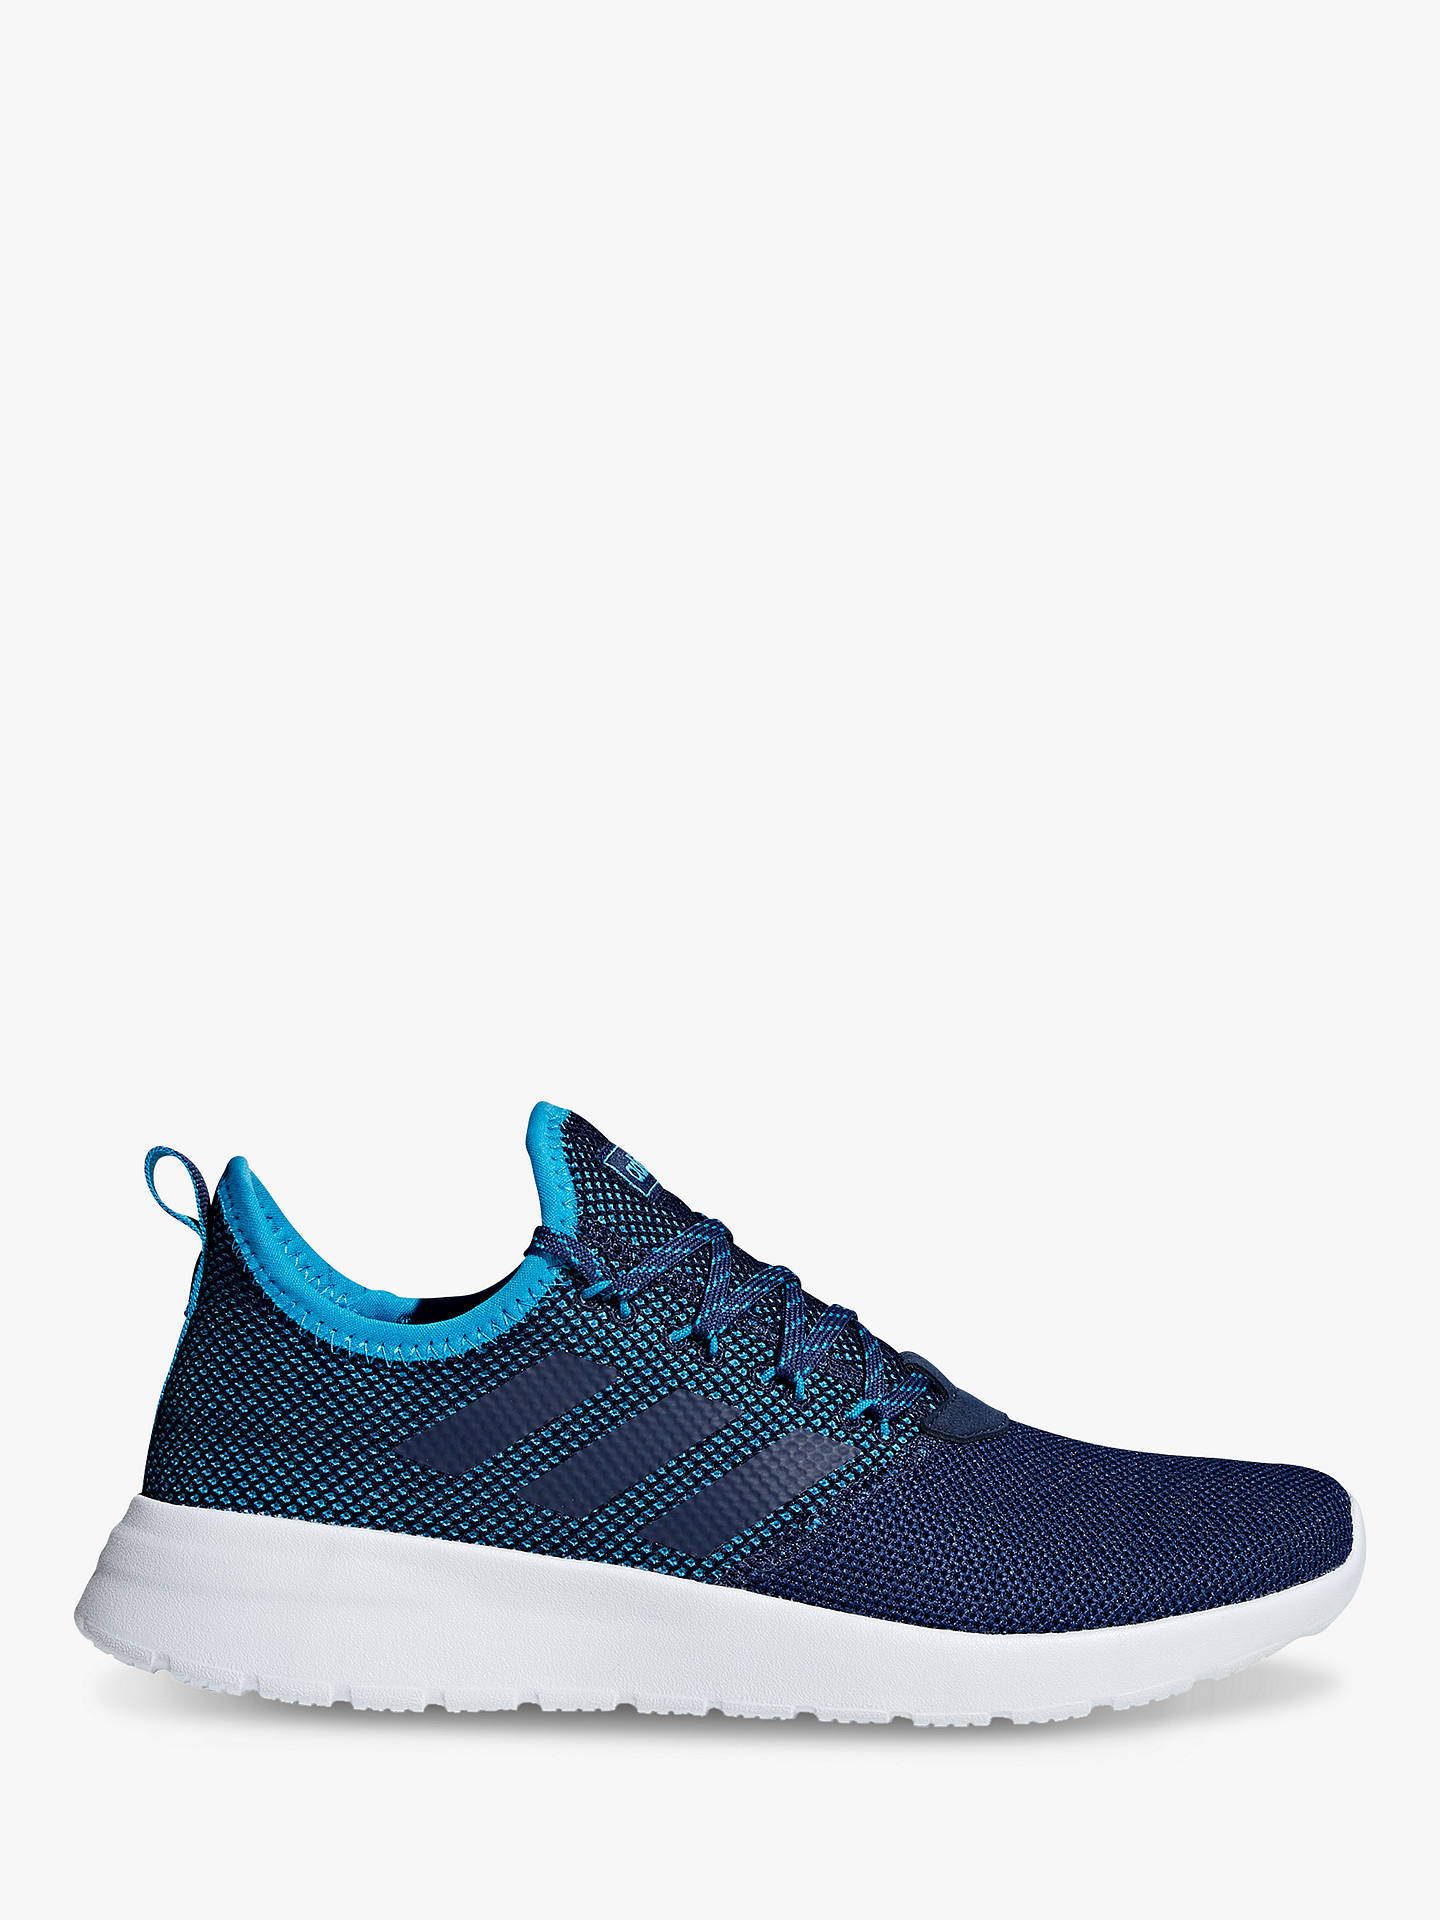 reputable site e30eb 71638 Buy adidas Lite Racer RBN Men s Trainers, Dark Blue Shock Cyan, 7 Online ...